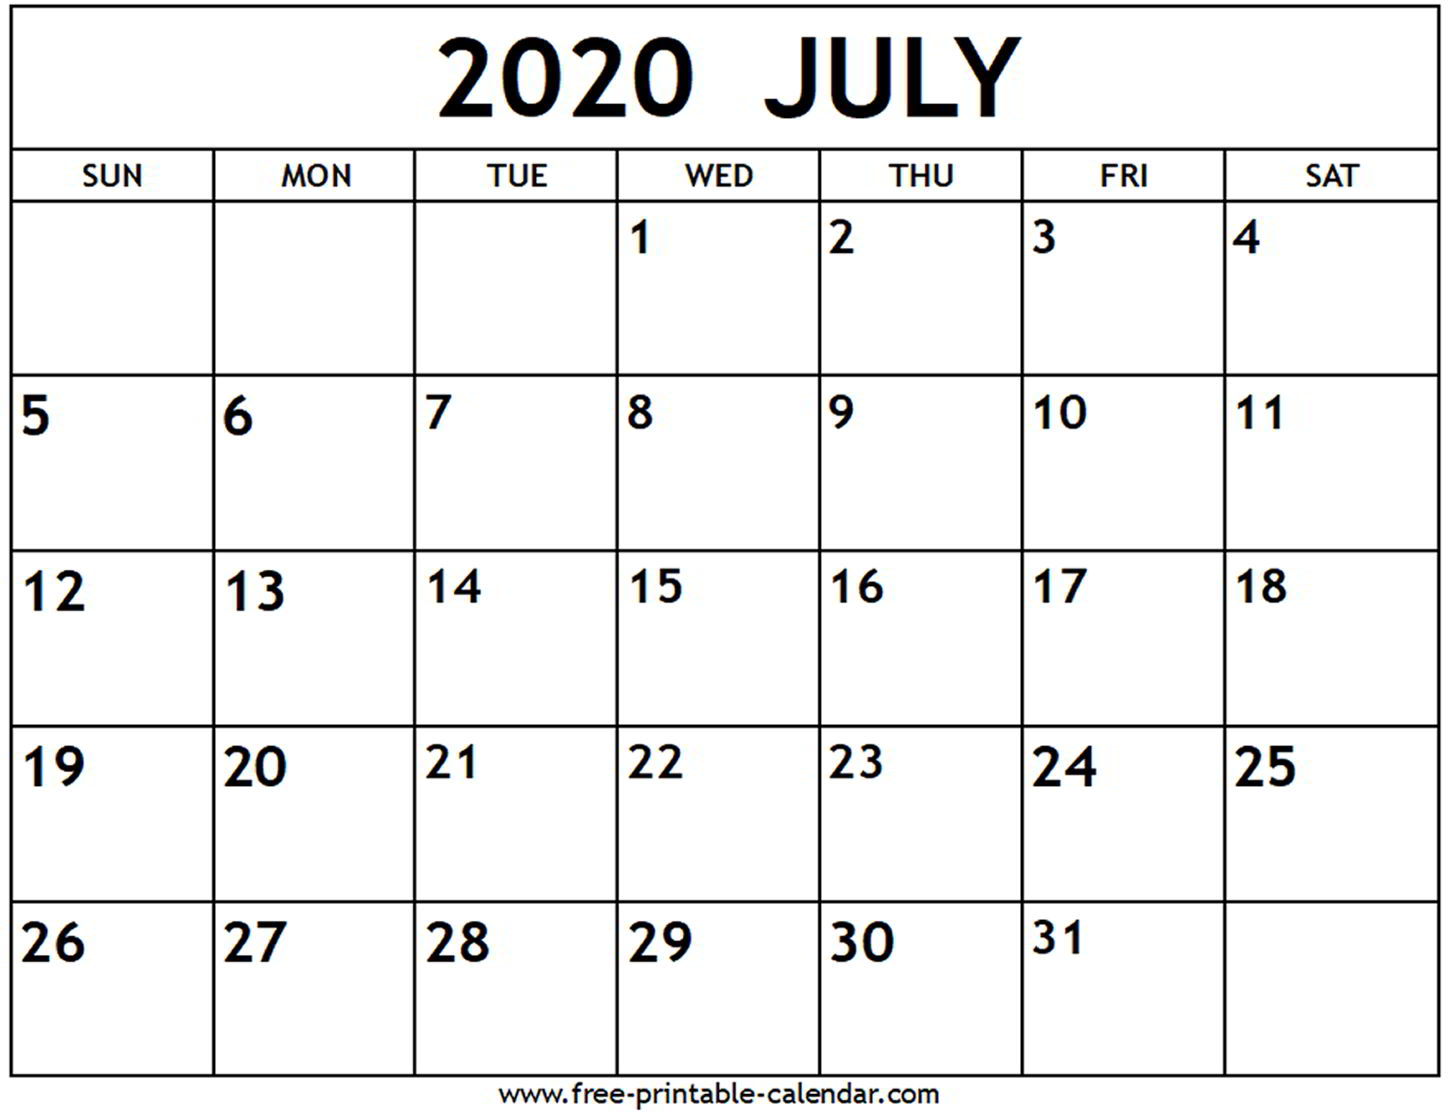 July 2020 Calendar Template - Colona.rsd7